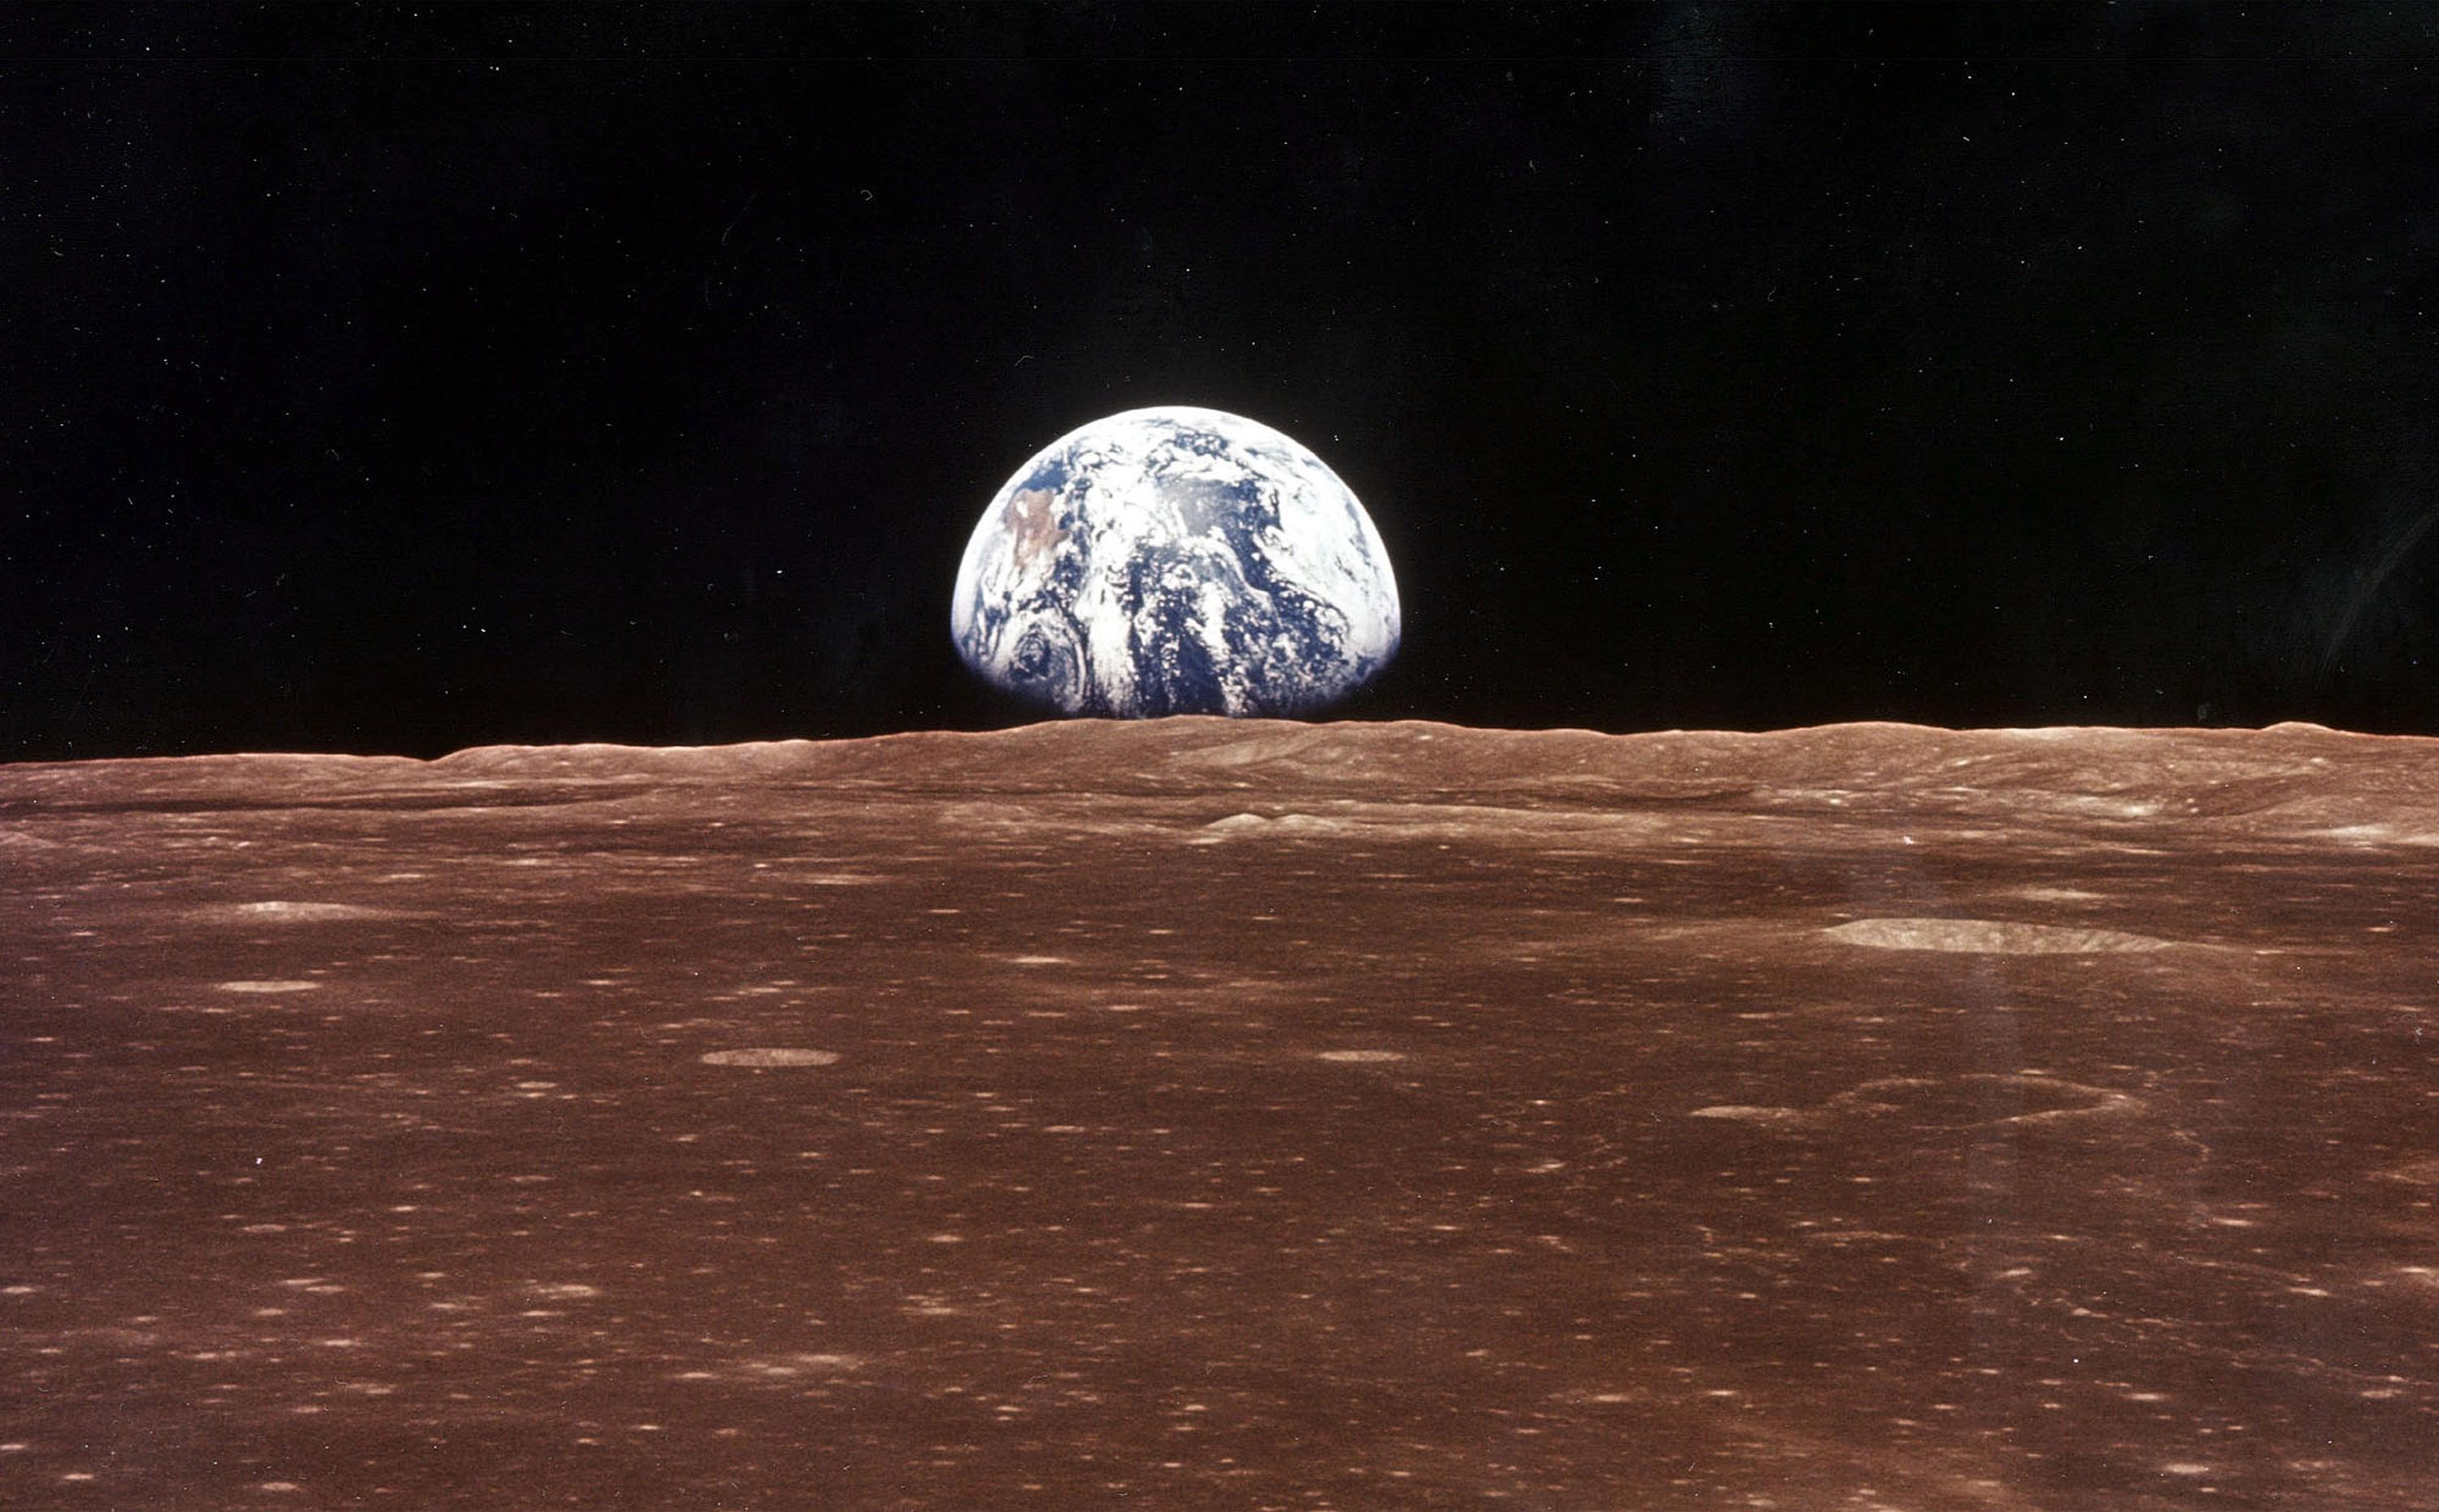 Earth as it is seen from the moon.